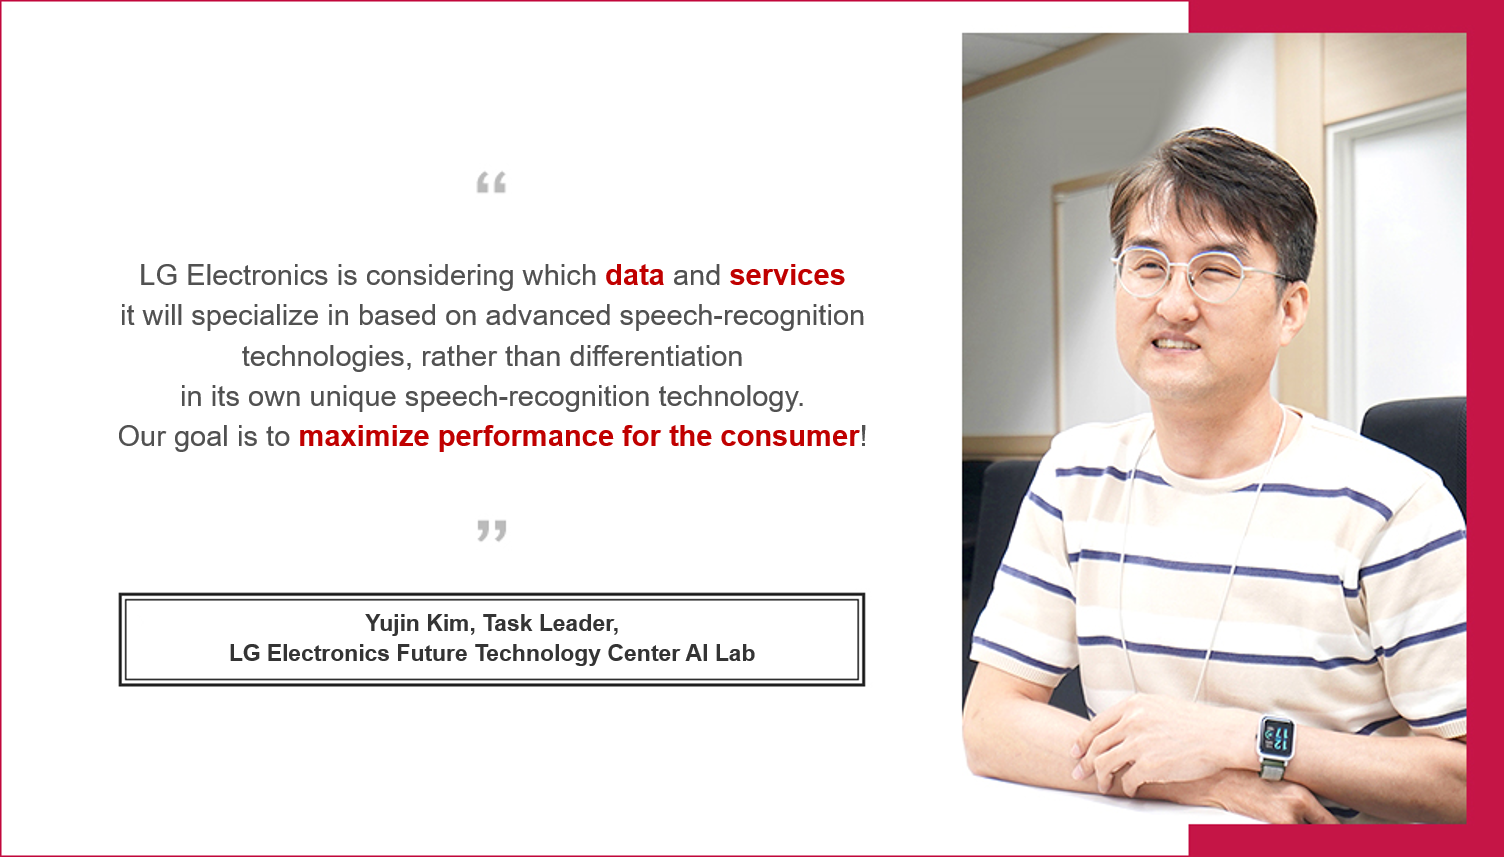 LG Electronics is considering which data and services it will specialize in based on advanced speech-recognition technologies.